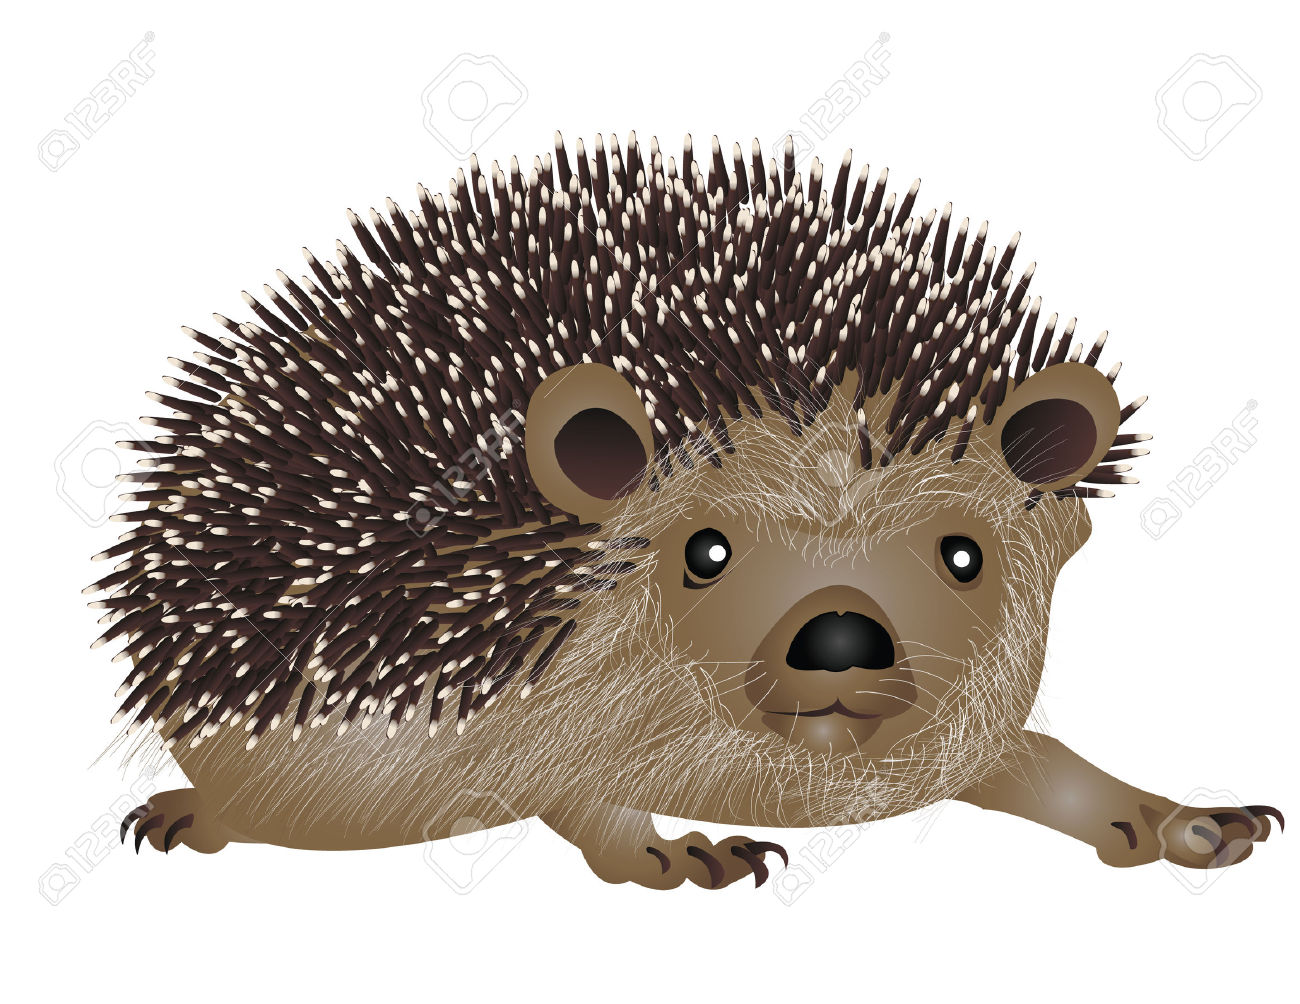 Hedgehog clipart comic. Fans clipartpost